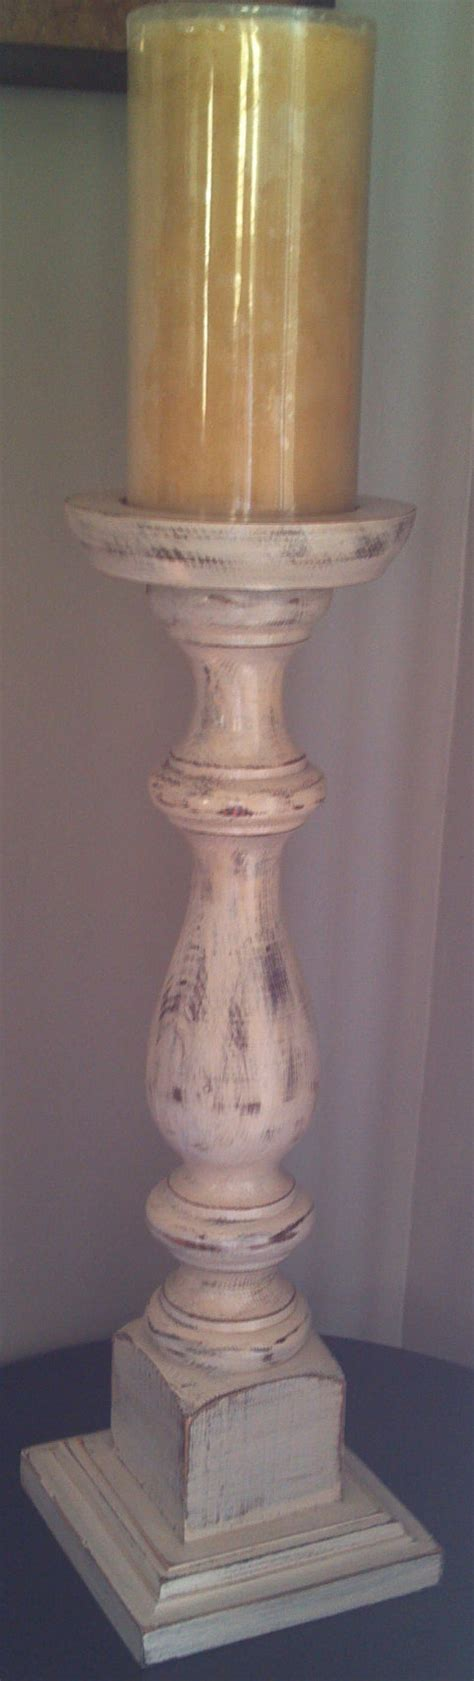 Wooden Pedestal Candle Holders Shabby Chic Wooden Pedestal Candle Holder By Peddlintreasurez